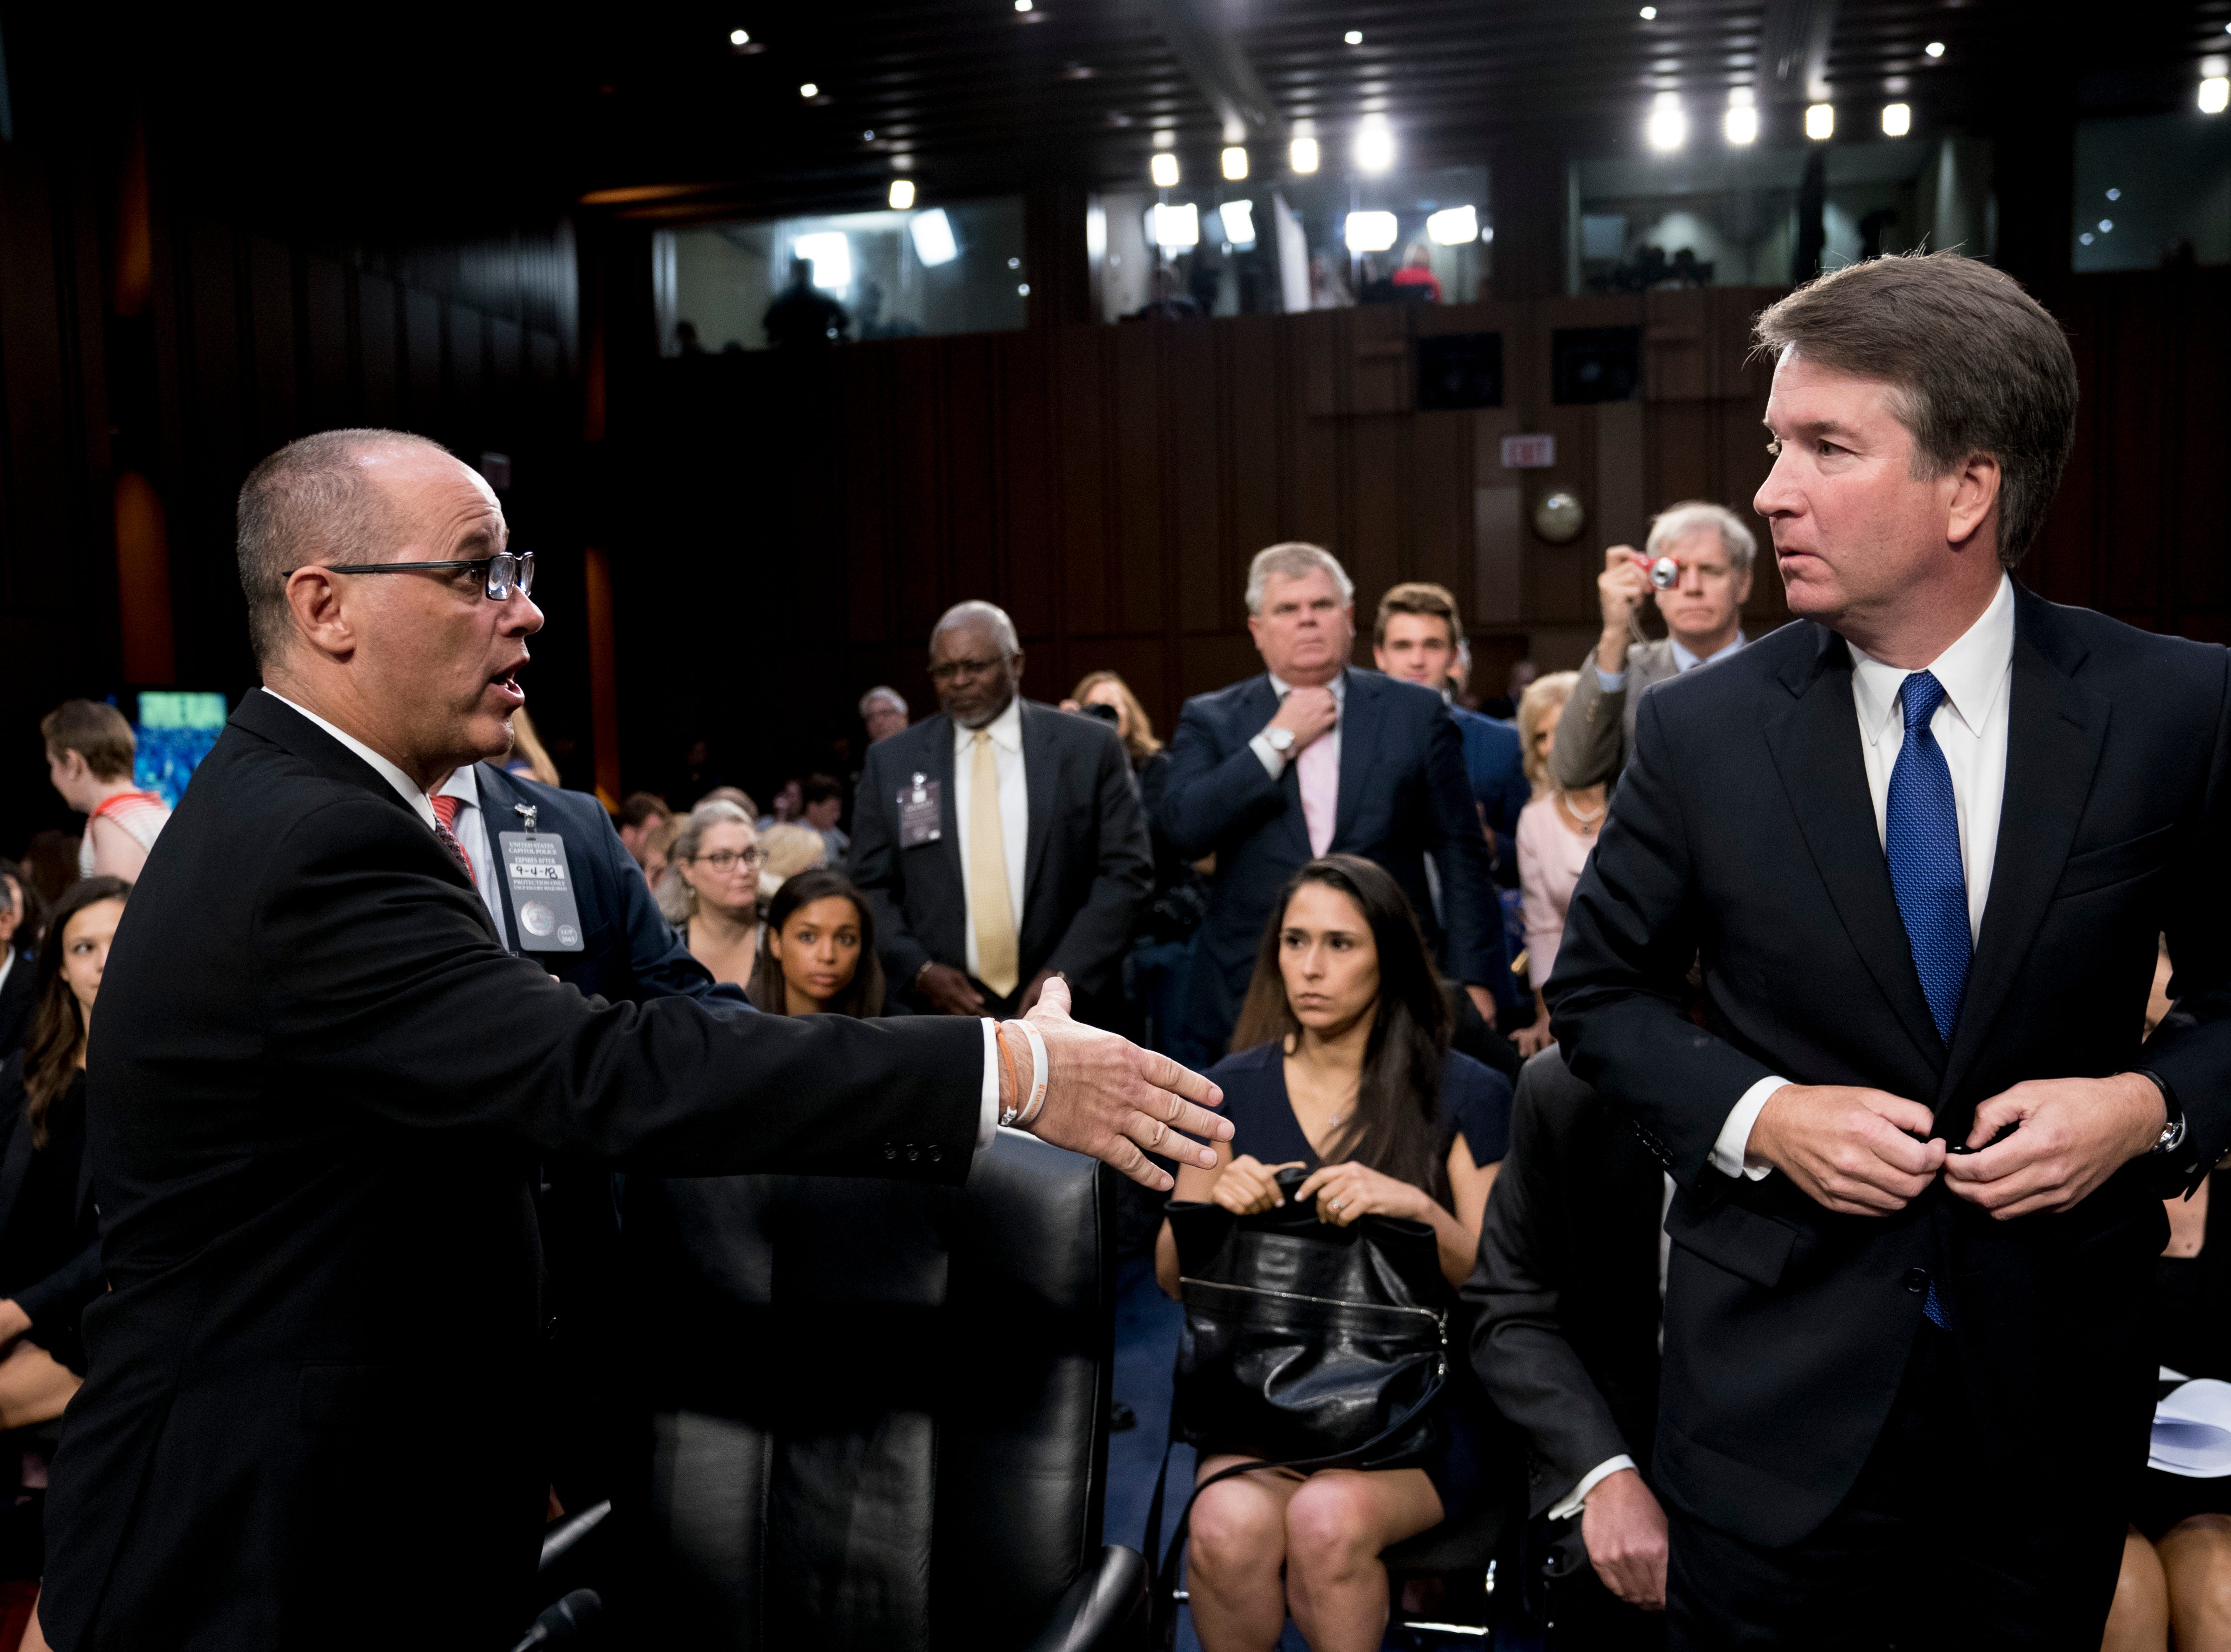 Fred Guttenberg, left, the father of Jamie Guttenberg, who was killed in the high school shooting in Parkland, Fla., attempts to shake hands with then Supreme Court nominee Brett Kavanaugh on Capitol Hill in Washington on Sept. 4, 2018. Kavanaugh did not shake his hand.